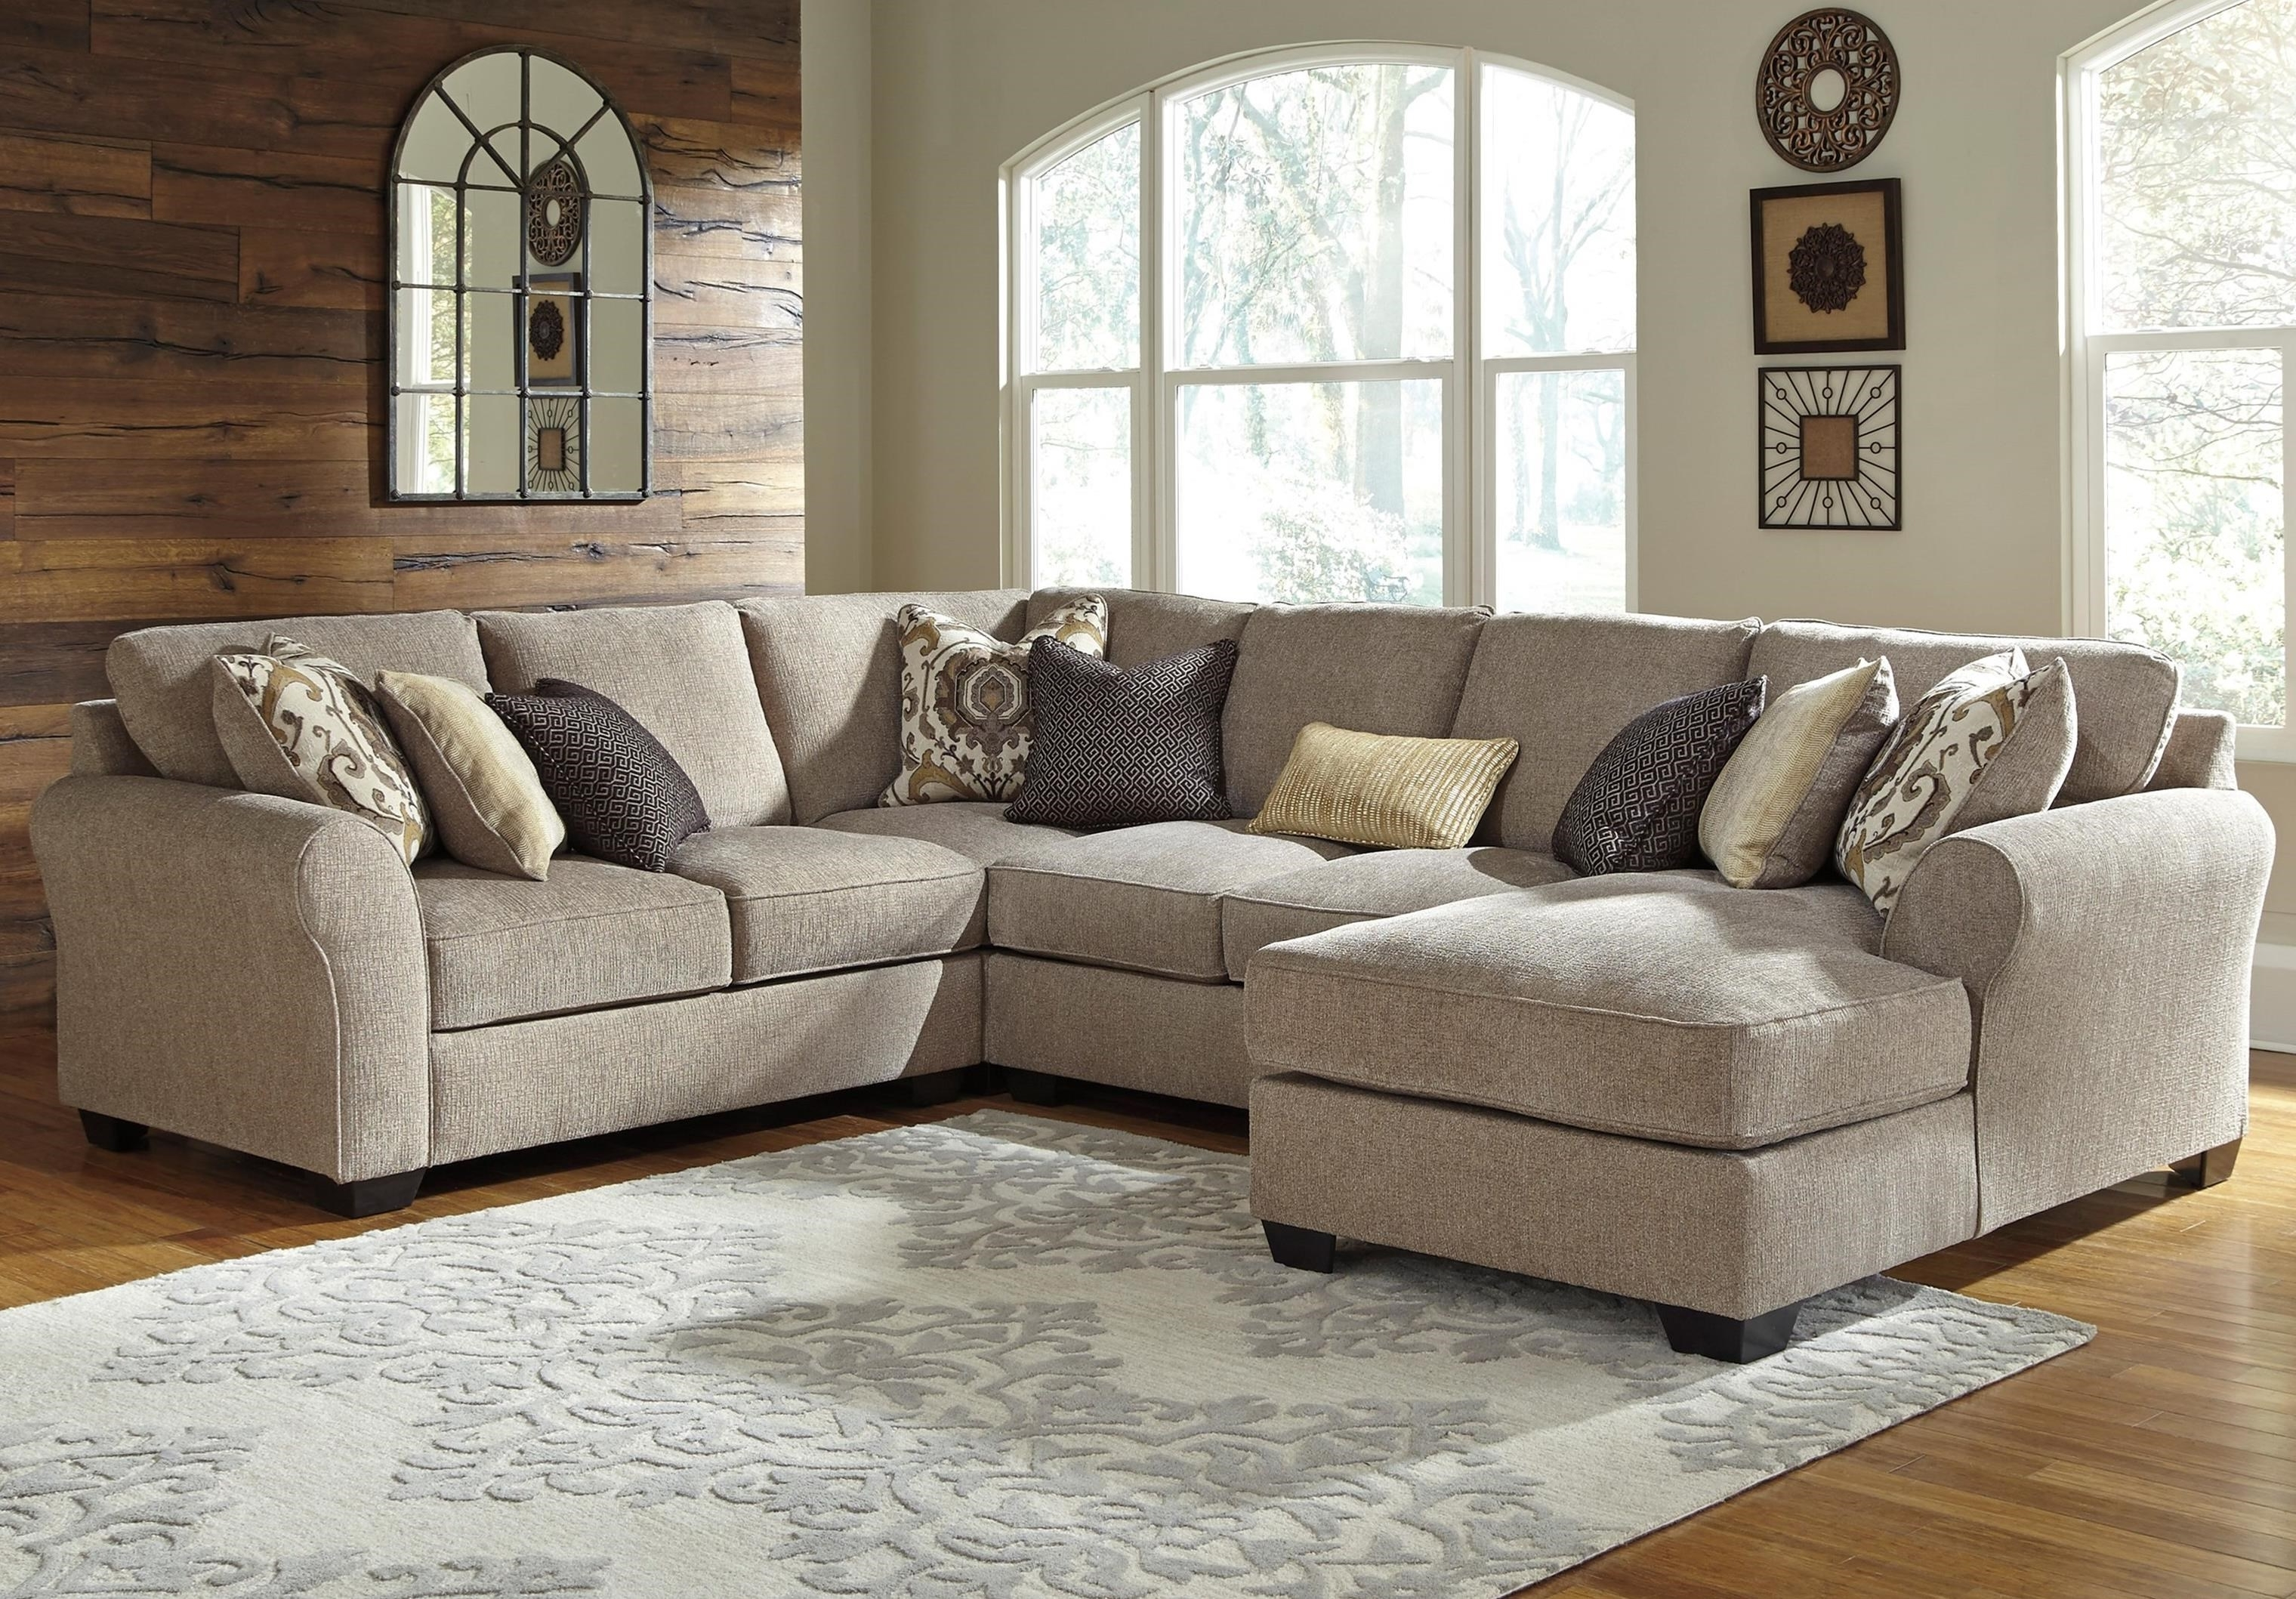 Fashionable Benchcraft Pantomine 4 Piece Sectional With Left Chaise (View 4 of 15)